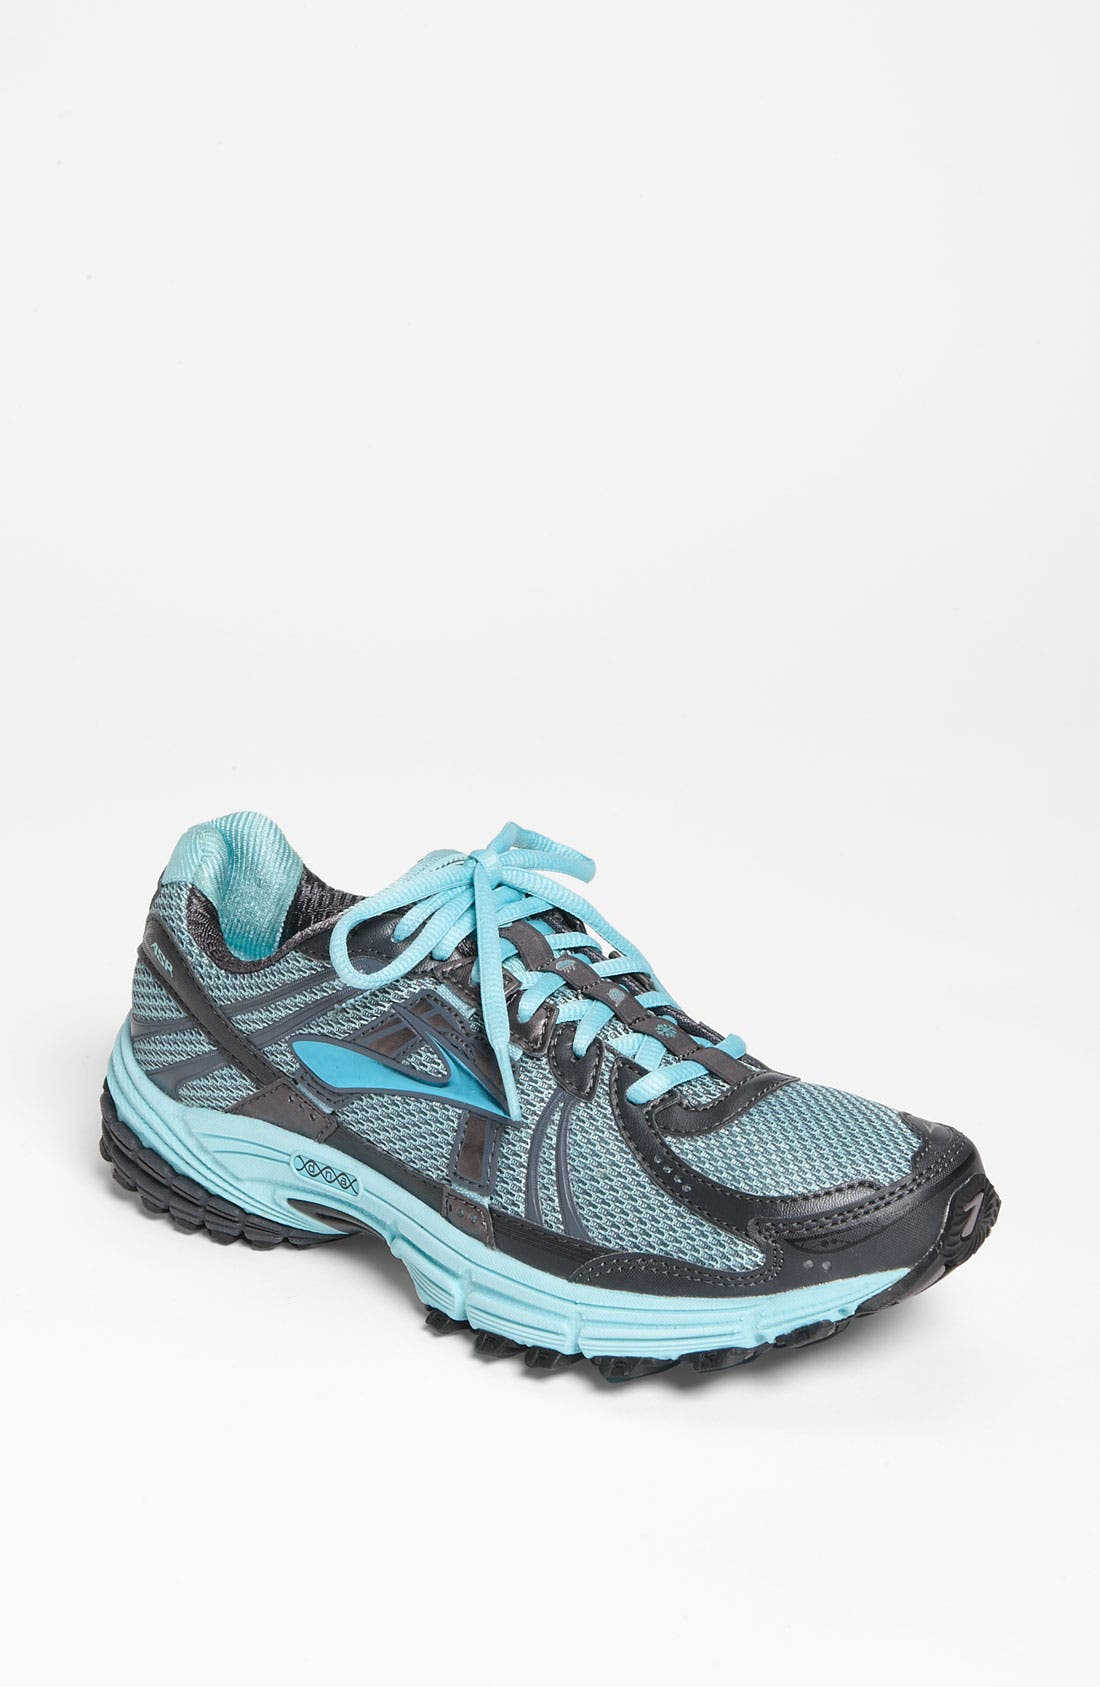 Main Image - Brooks 'Adrenaline ASR 9' Trail Running Shoe (Women)(Retail Price: $119.95)